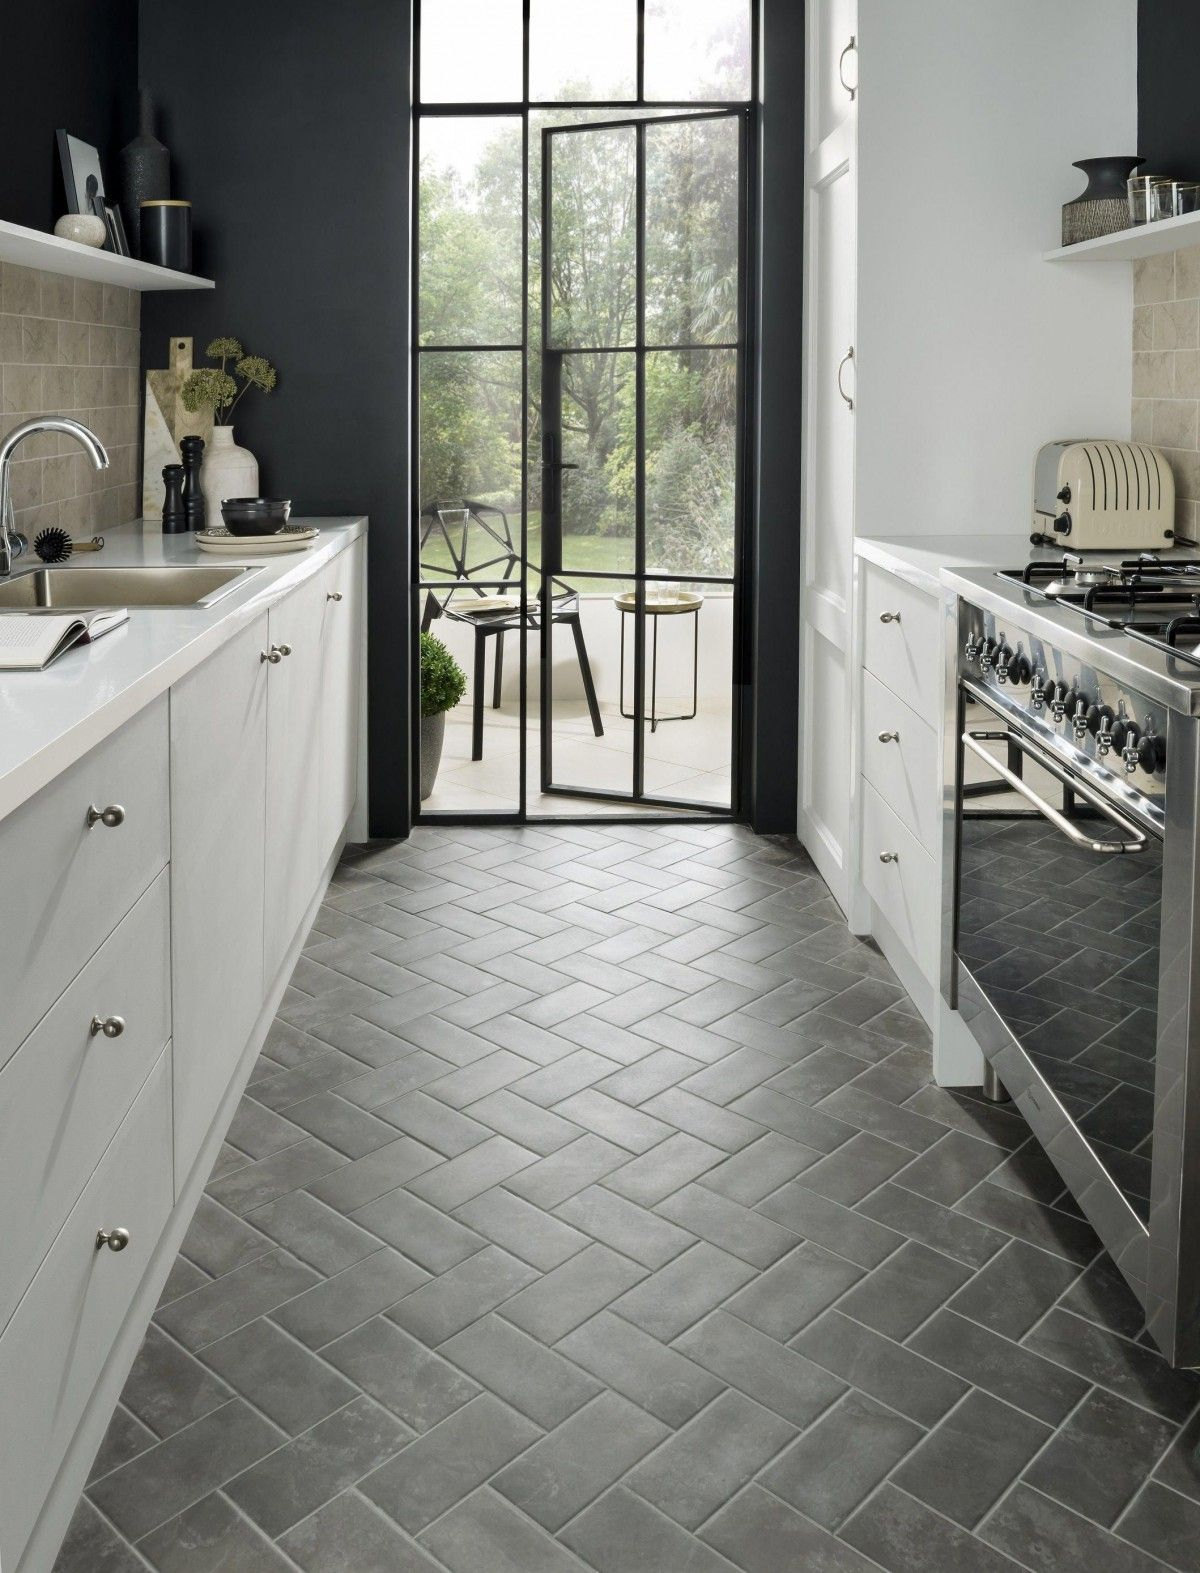 Kitchen Floor Tile Retro Commercial Marble Kitchen Floor Tile Kitchen Flooring Kitchen Floor Plans Kitchen Remodeling Projects